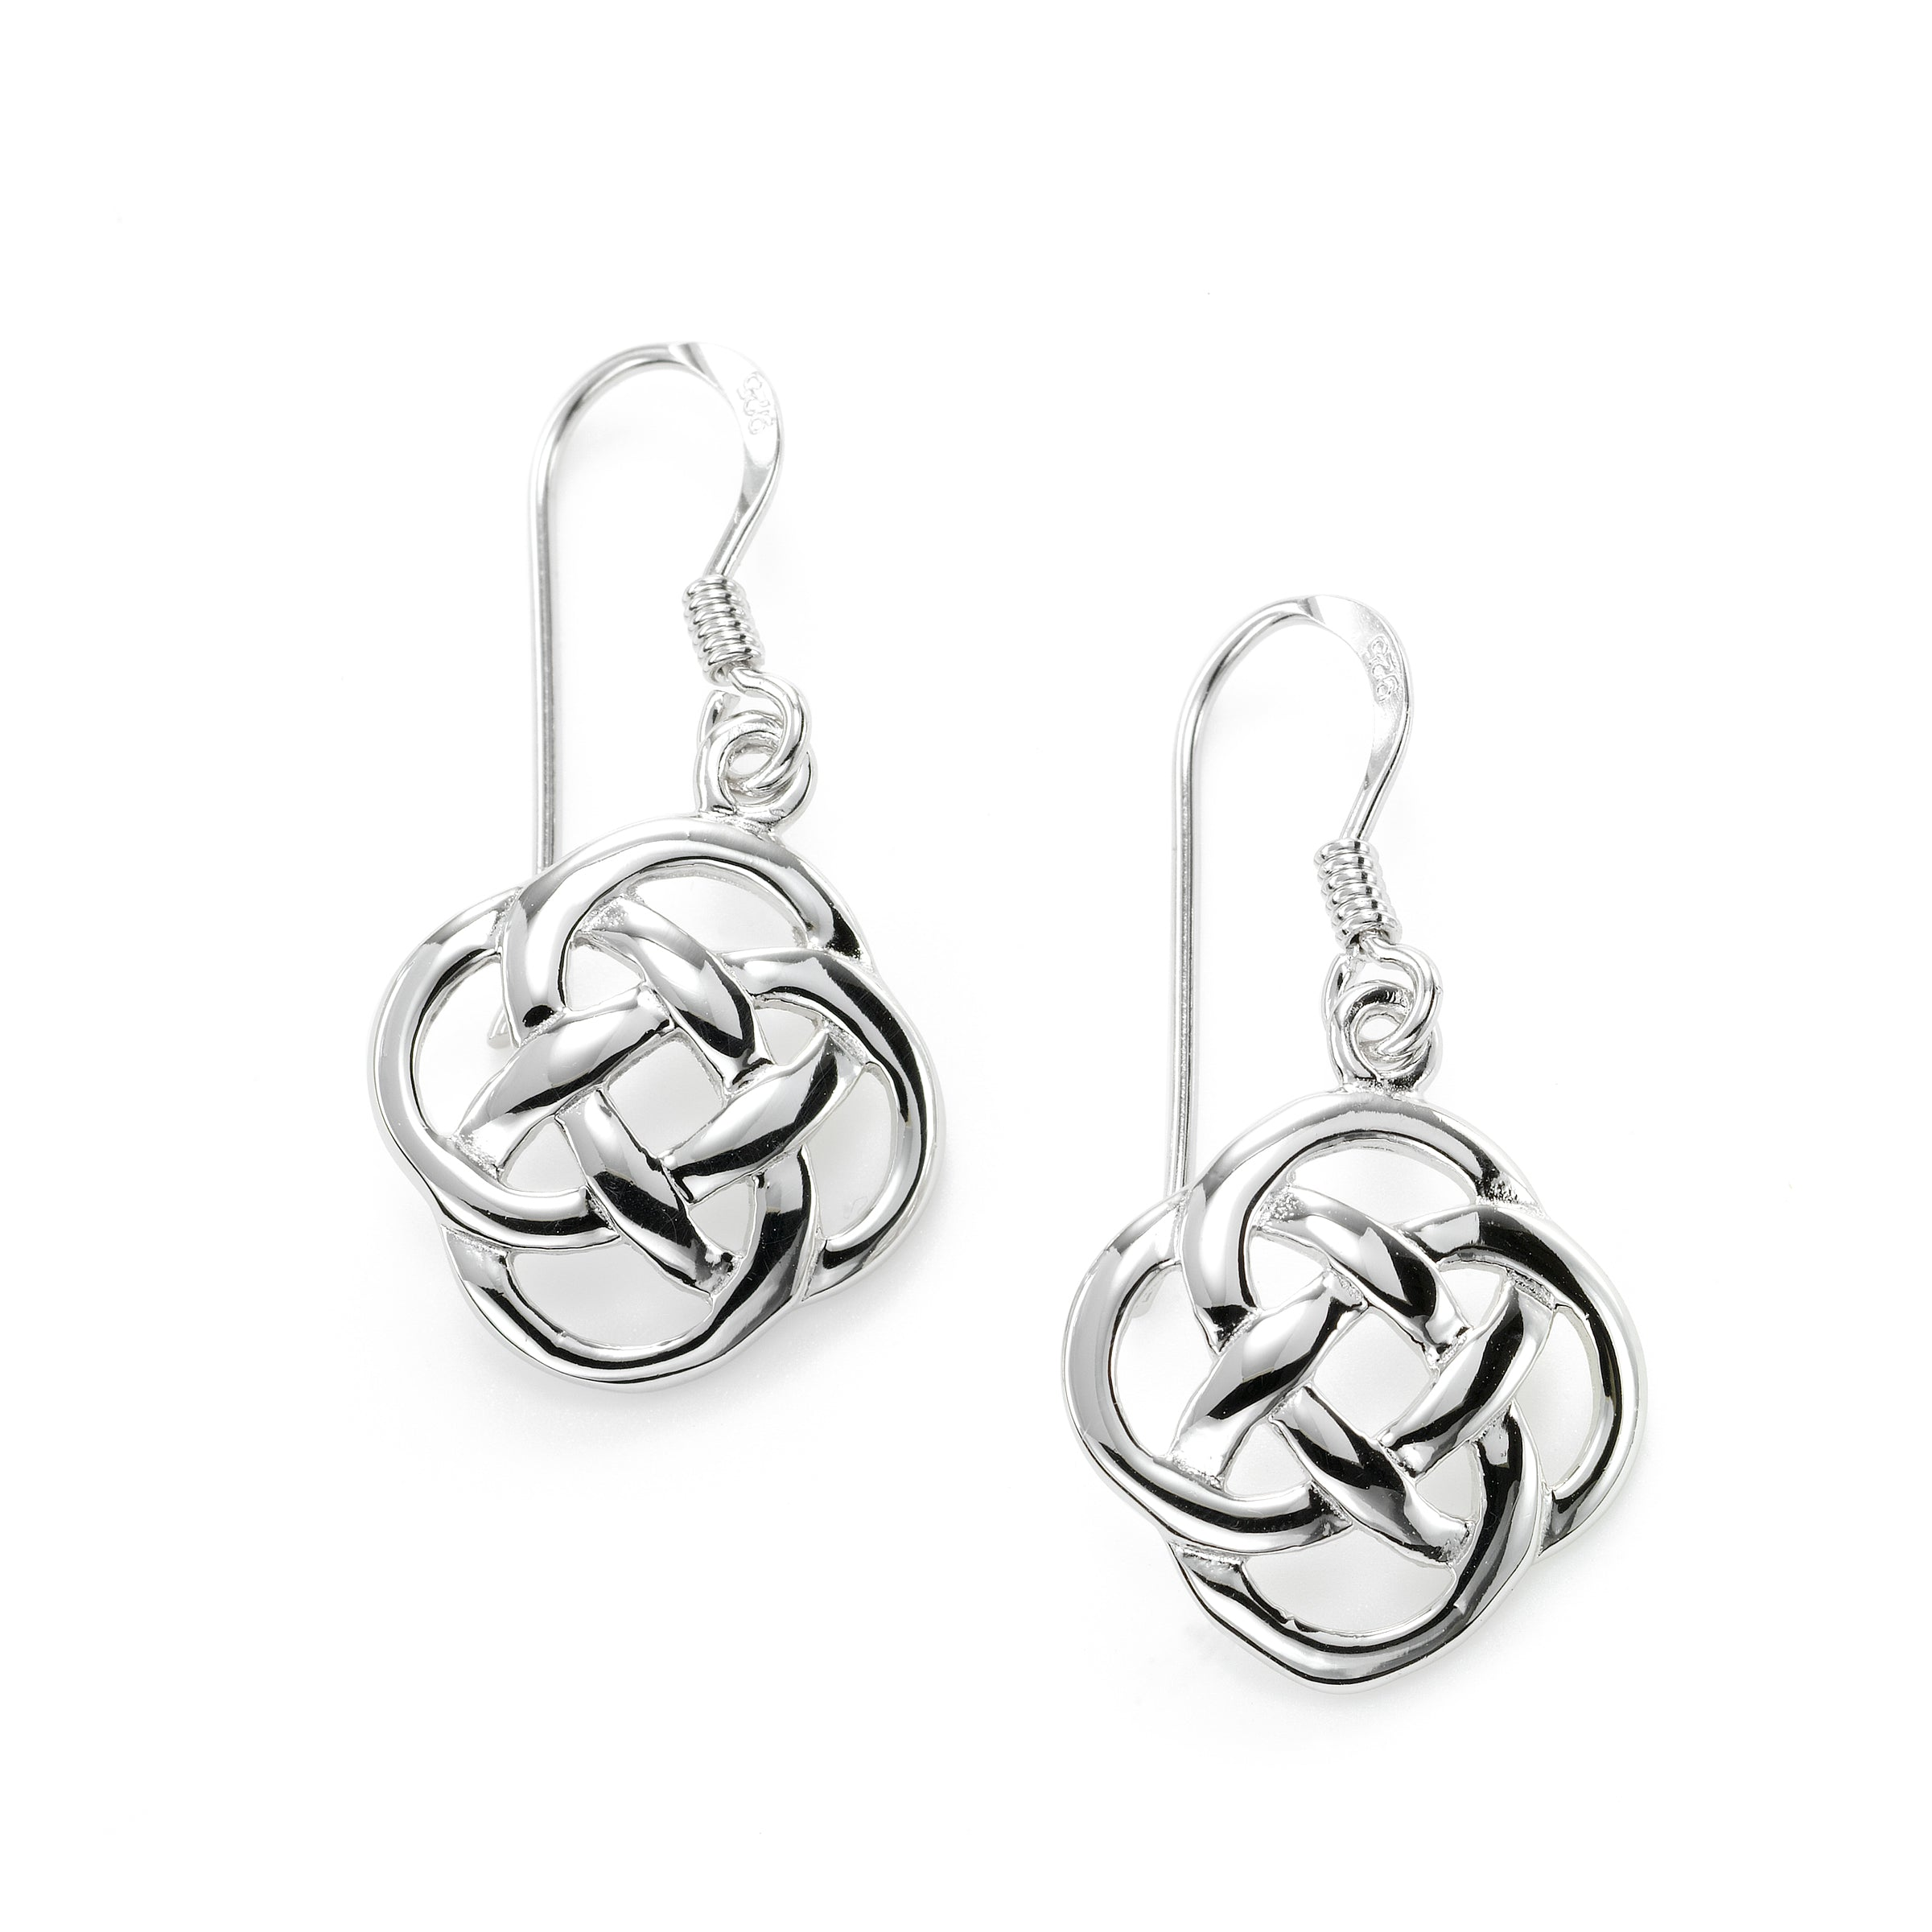 Interlocking Knot Drop Earrings, Sterling Silver